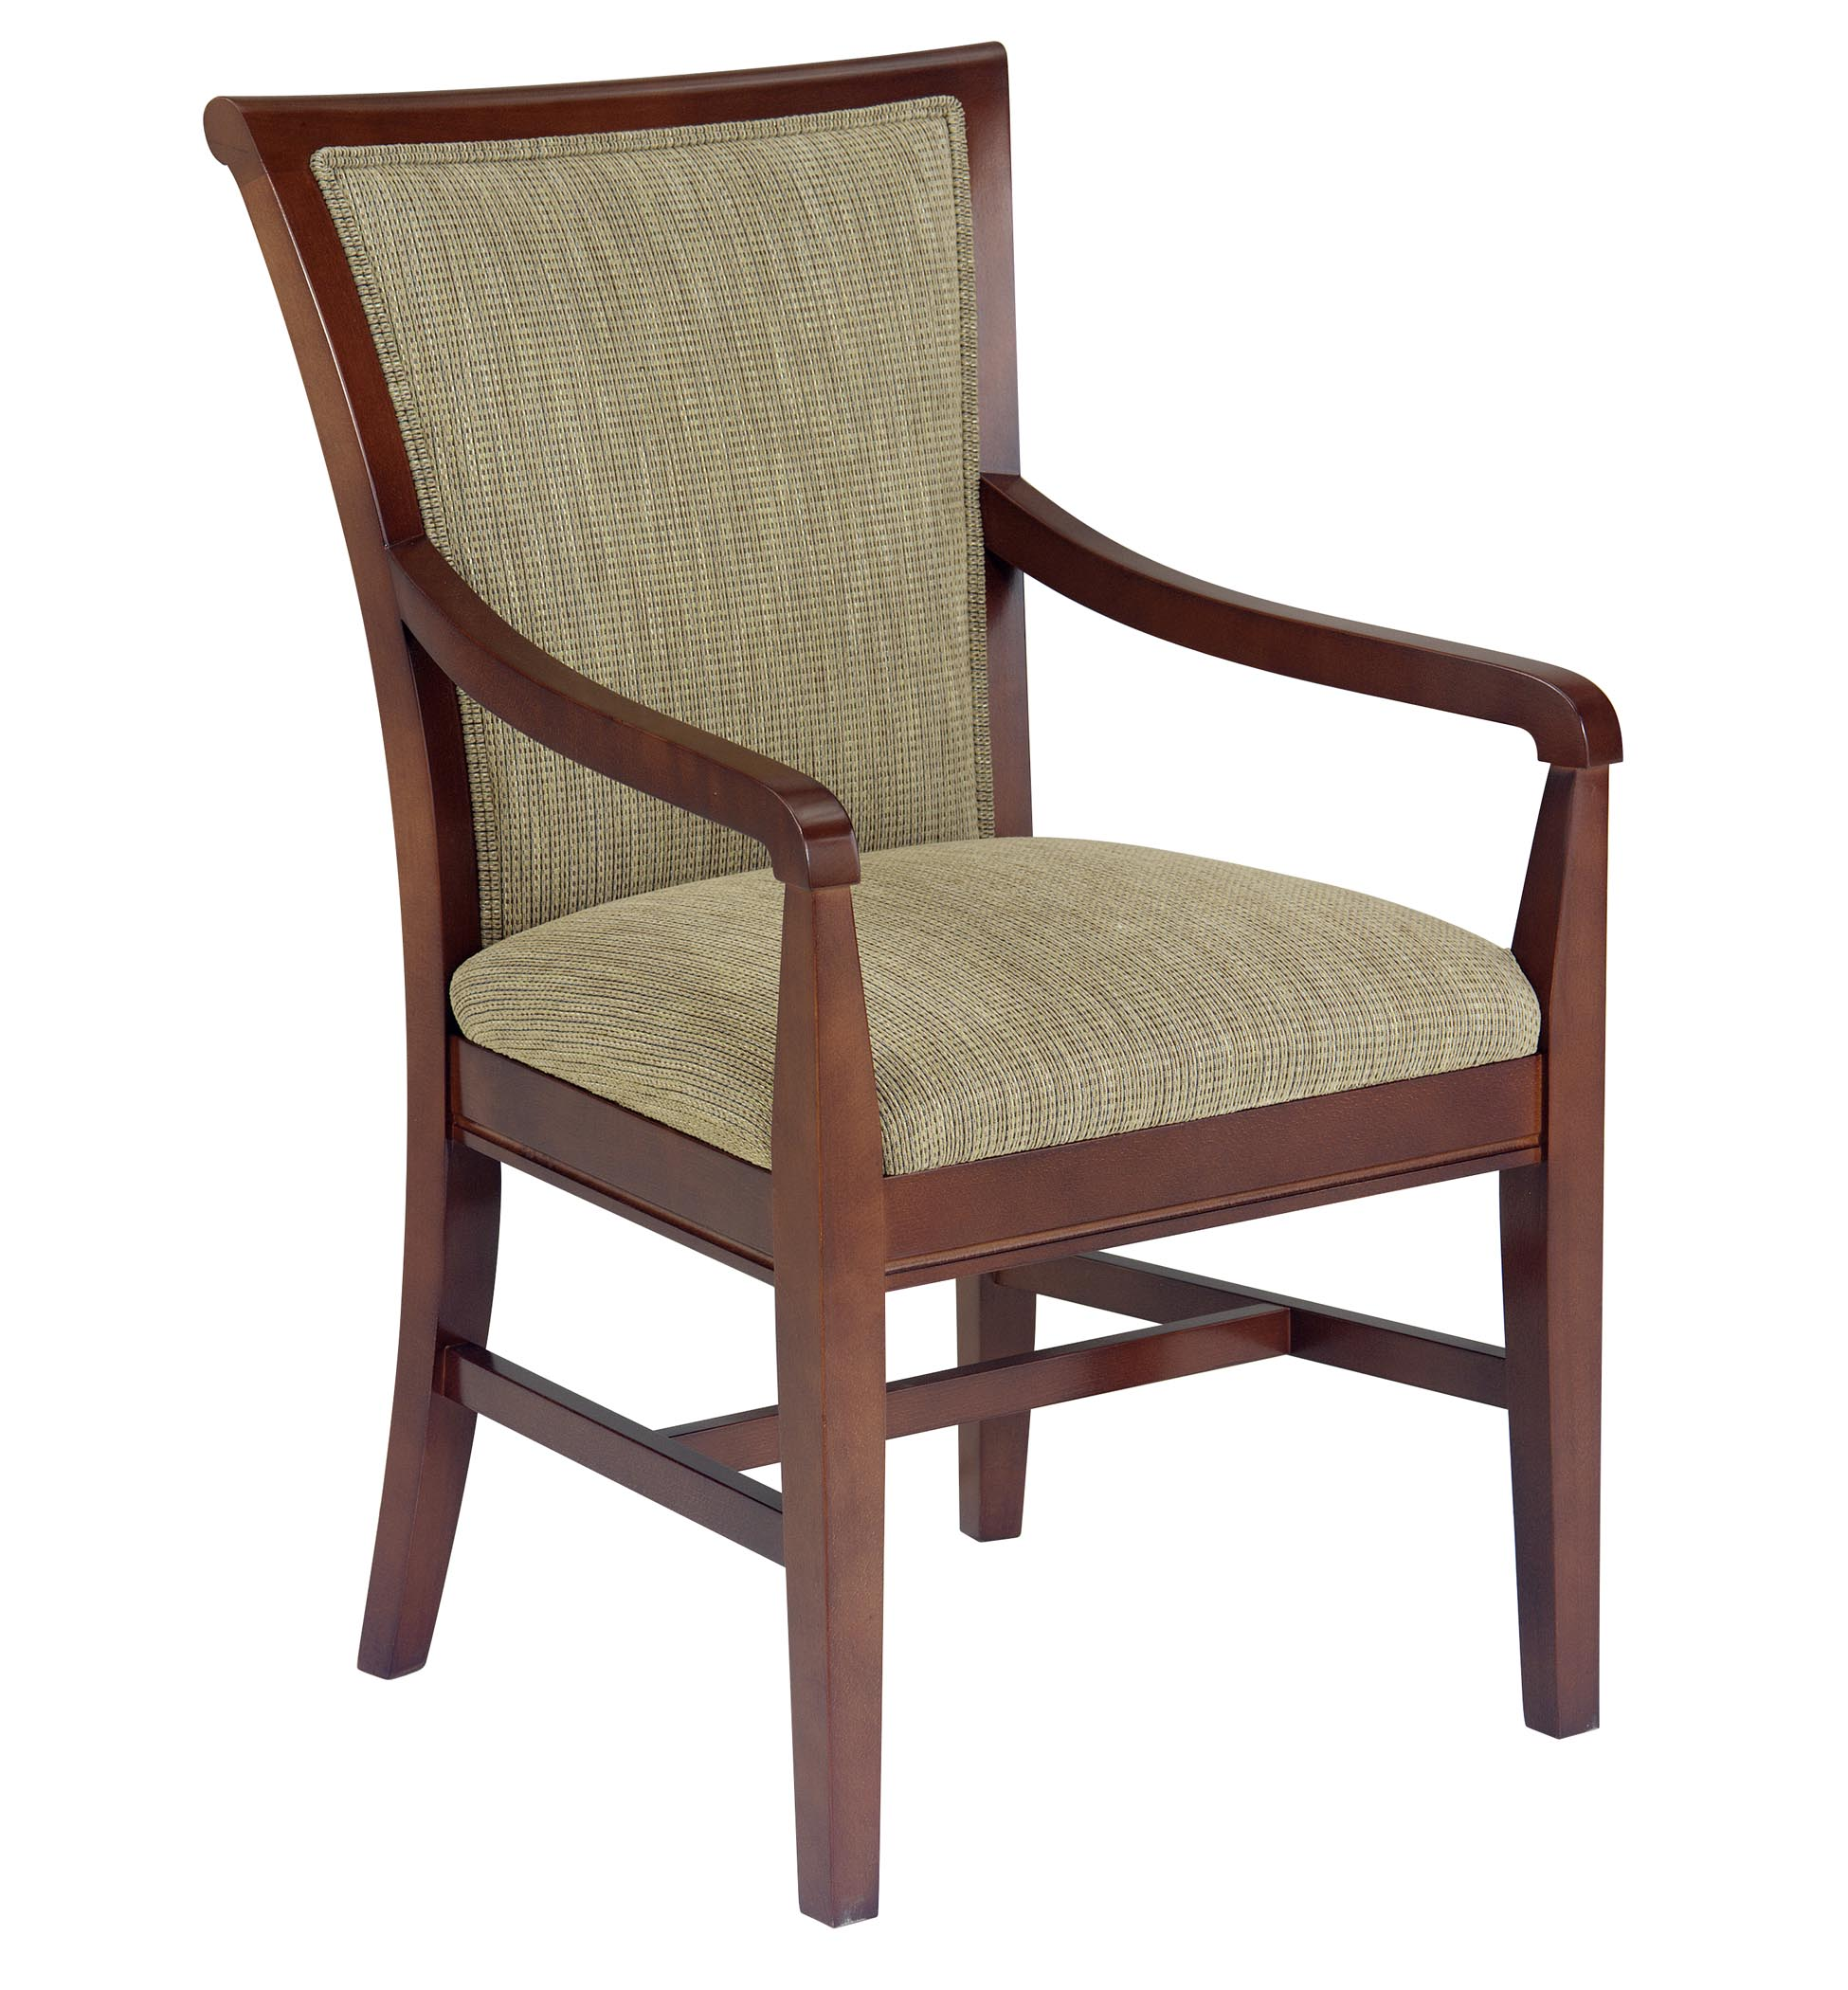 Wooden Chairs With Arms Lg1067 1 Wood Arm Chair